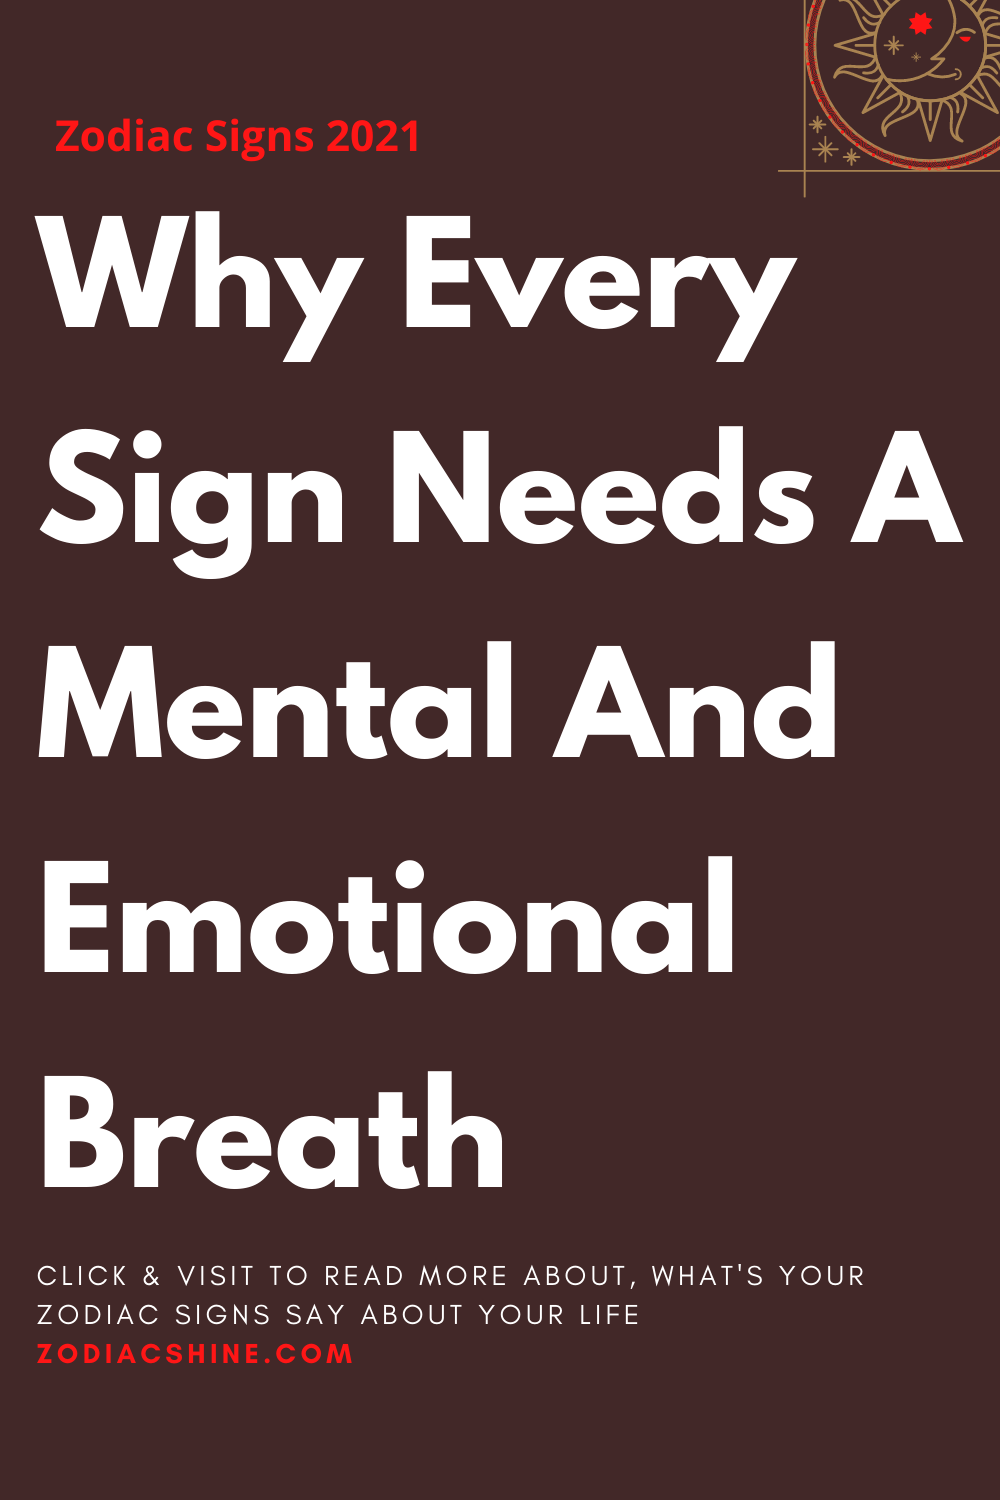 Why Every Sign Needs A Mental And Emotional Breath